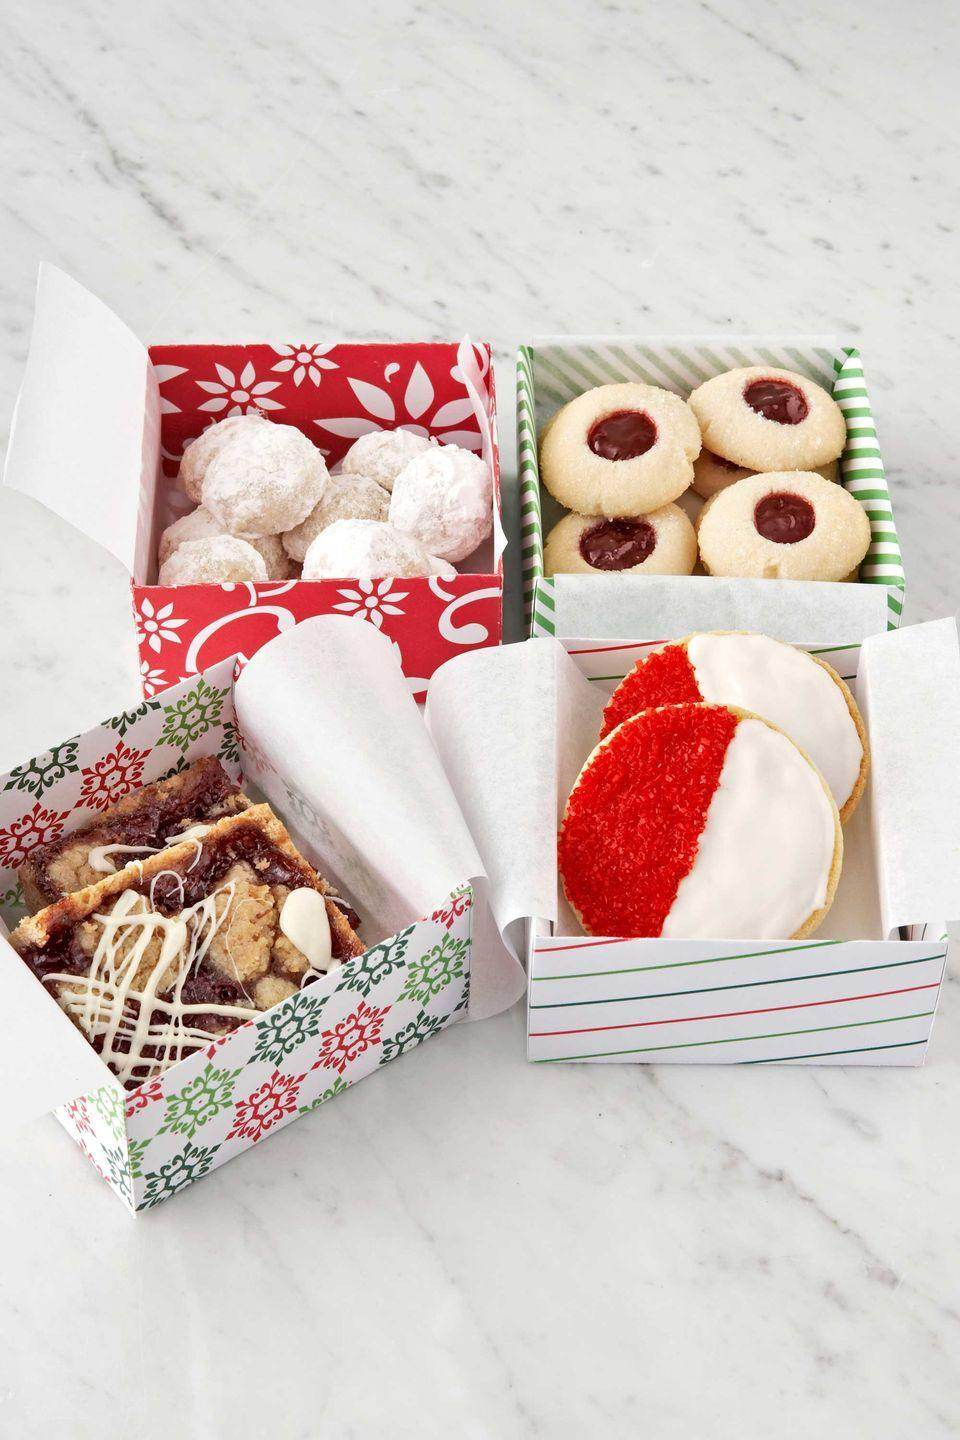 """<p>One tasty recipe yields four very different kinds of Christmas cookies. </p><p><strong>Recipes: </strong><a href=""""https://www.countryliving.com/food-drinks/recipes/a3306/tea-cookie-dough/"""" rel=""""nofollow noopener"""" target=""""_blank"""" data-ylk=""""slk:Tea Cookie Dough"""" class=""""link rapid-noclick-resp""""><strong>Tea Cookie Dough</strong></a></p><p><strong><a href=""""https://www.countryliving.com/food-drinks/recipes/a3272/roly-poly-cookie-recipe/"""" rel=""""nofollow noopener"""" target=""""_blank"""" data-ylk=""""slk:Roly Polys"""" class=""""link rapid-noclick-resp"""">Roly Polys</a> </strong></p><p><a href=""""https://www.countryliving.com/food-drinks/recipes/a3271/jam-thumbprints-recipe/"""" rel=""""nofollow noopener"""" target=""""_blank"""" data-ylk=""""slk:Jam Thumbprints"""" class=""""link rapid-noclick-resp""""><strong>Jam Thumbprints</strong></a></p><p><strong><a href=""""https://www.countryliving.com/food-drinks/recipes/a3267/red-and-white-cookie-recipe/"""" rel=""""nofollow noopener"""" target=""""_blank"""" data-ylk=""""slk:Red-and-Whites"""" class=""""link rapid-noclick-resp"""">Red-and-Whites</a> </strong></p><p><a href=""""https://www.countryliving.com/food-drinks/recipes/a3269/raspberry-bars-recipe/"""" rel=""""nofollow noopener"""" target=""""_blank"""" data-ylk=""""slk:Raspberry Bars"""" class=""""link rapid-noclick-resp""""><strong>Raspberry Bars</strong></a></p>"""